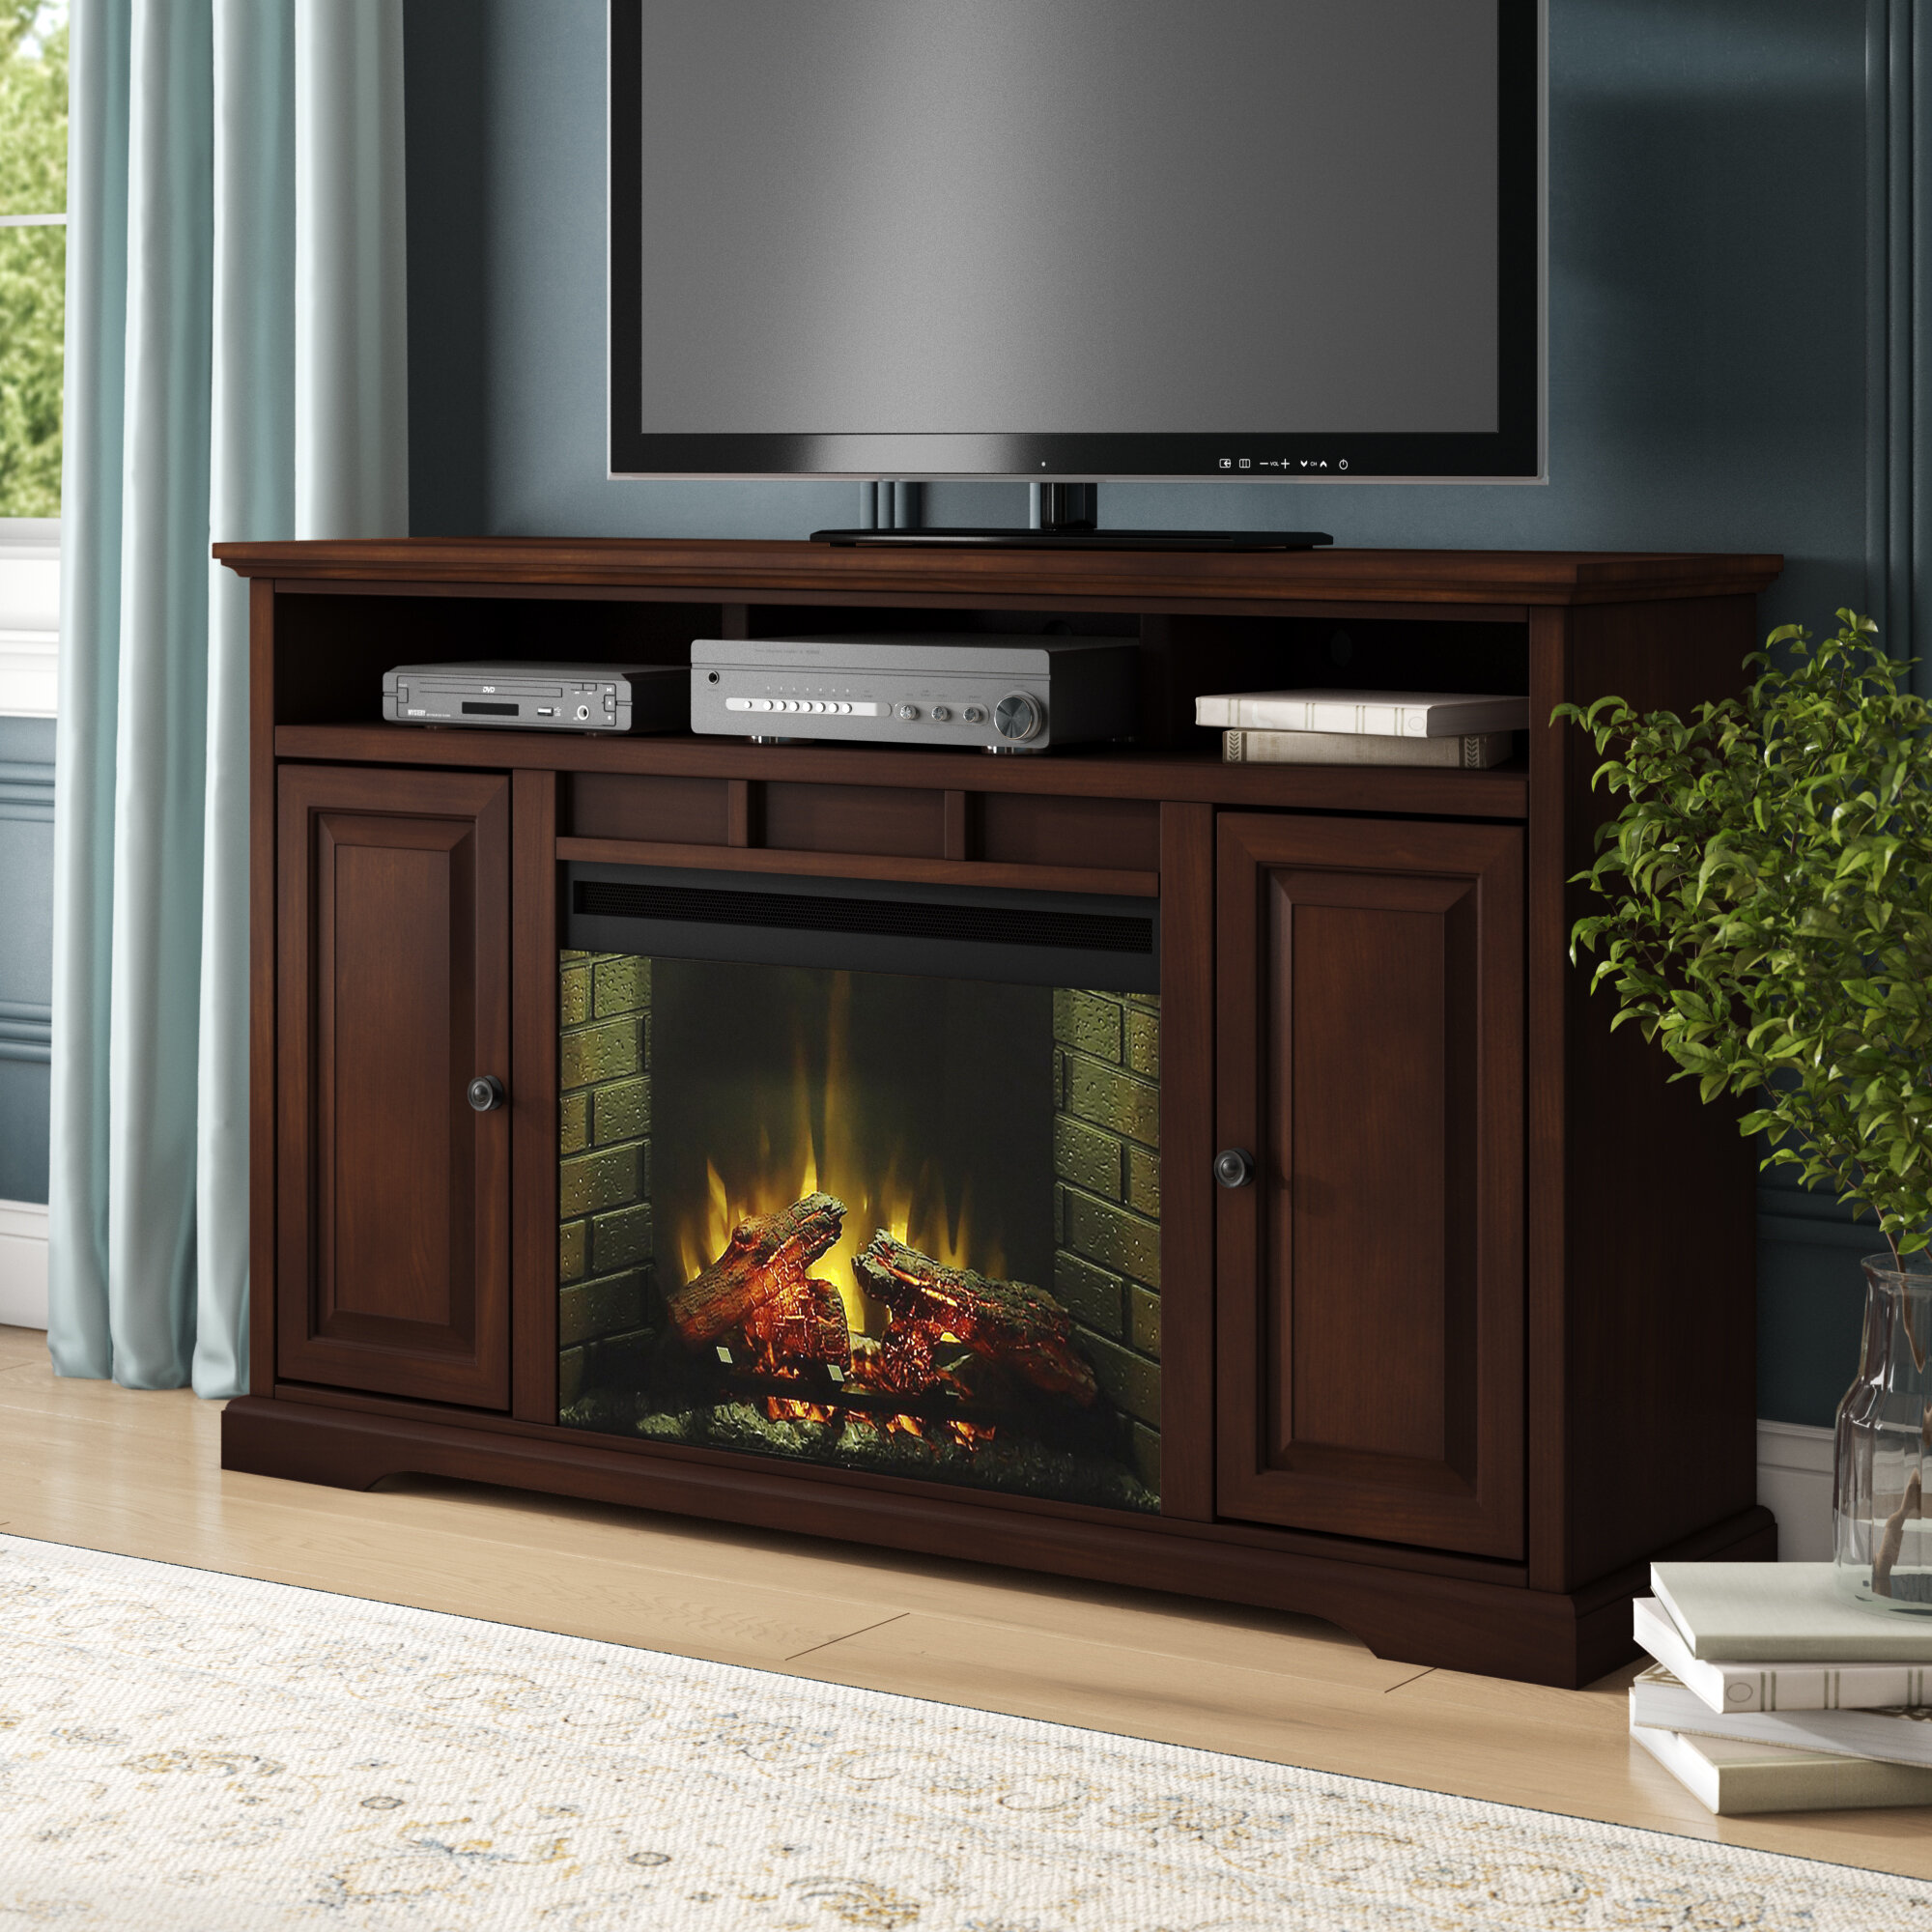 Darby Home Co Legrand Tv Stand For Tvs Up To 70 With Electric Fireplace Included Reviews